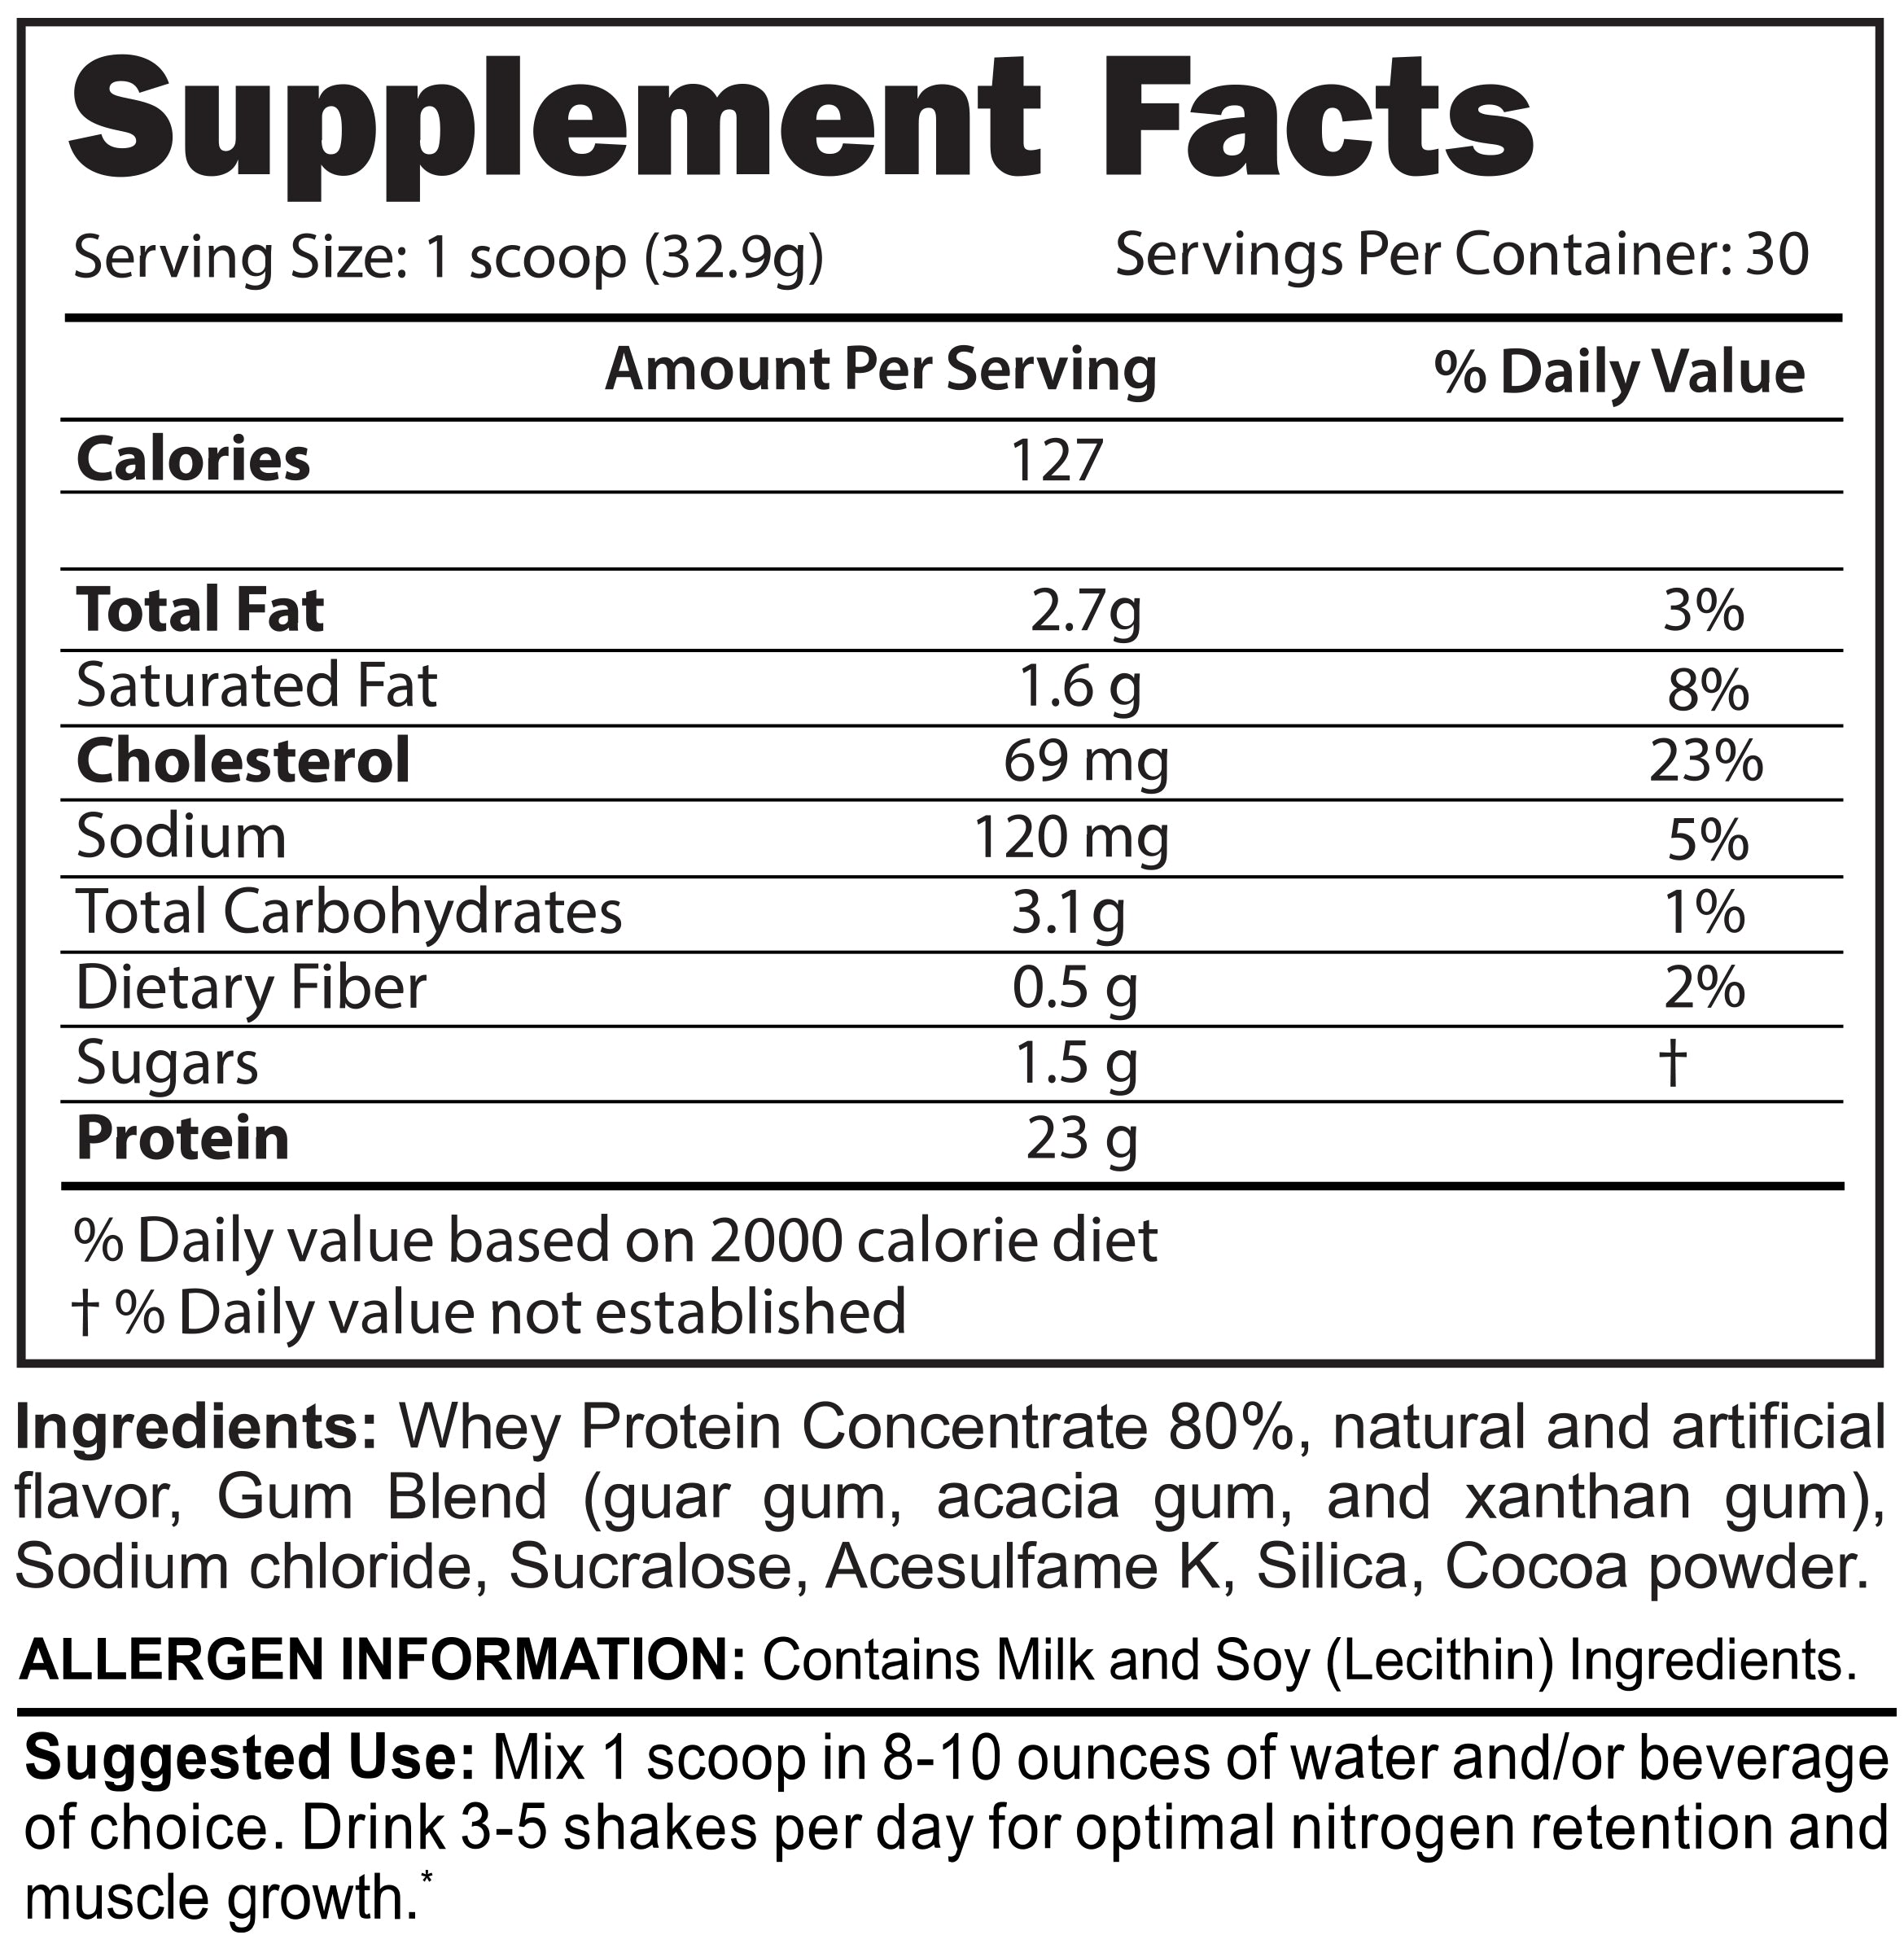 popup:https://cdn.shopify.com/s/files/1/2978/4644/files/protein-boost-supplement-facts-img.png?v=1607557164